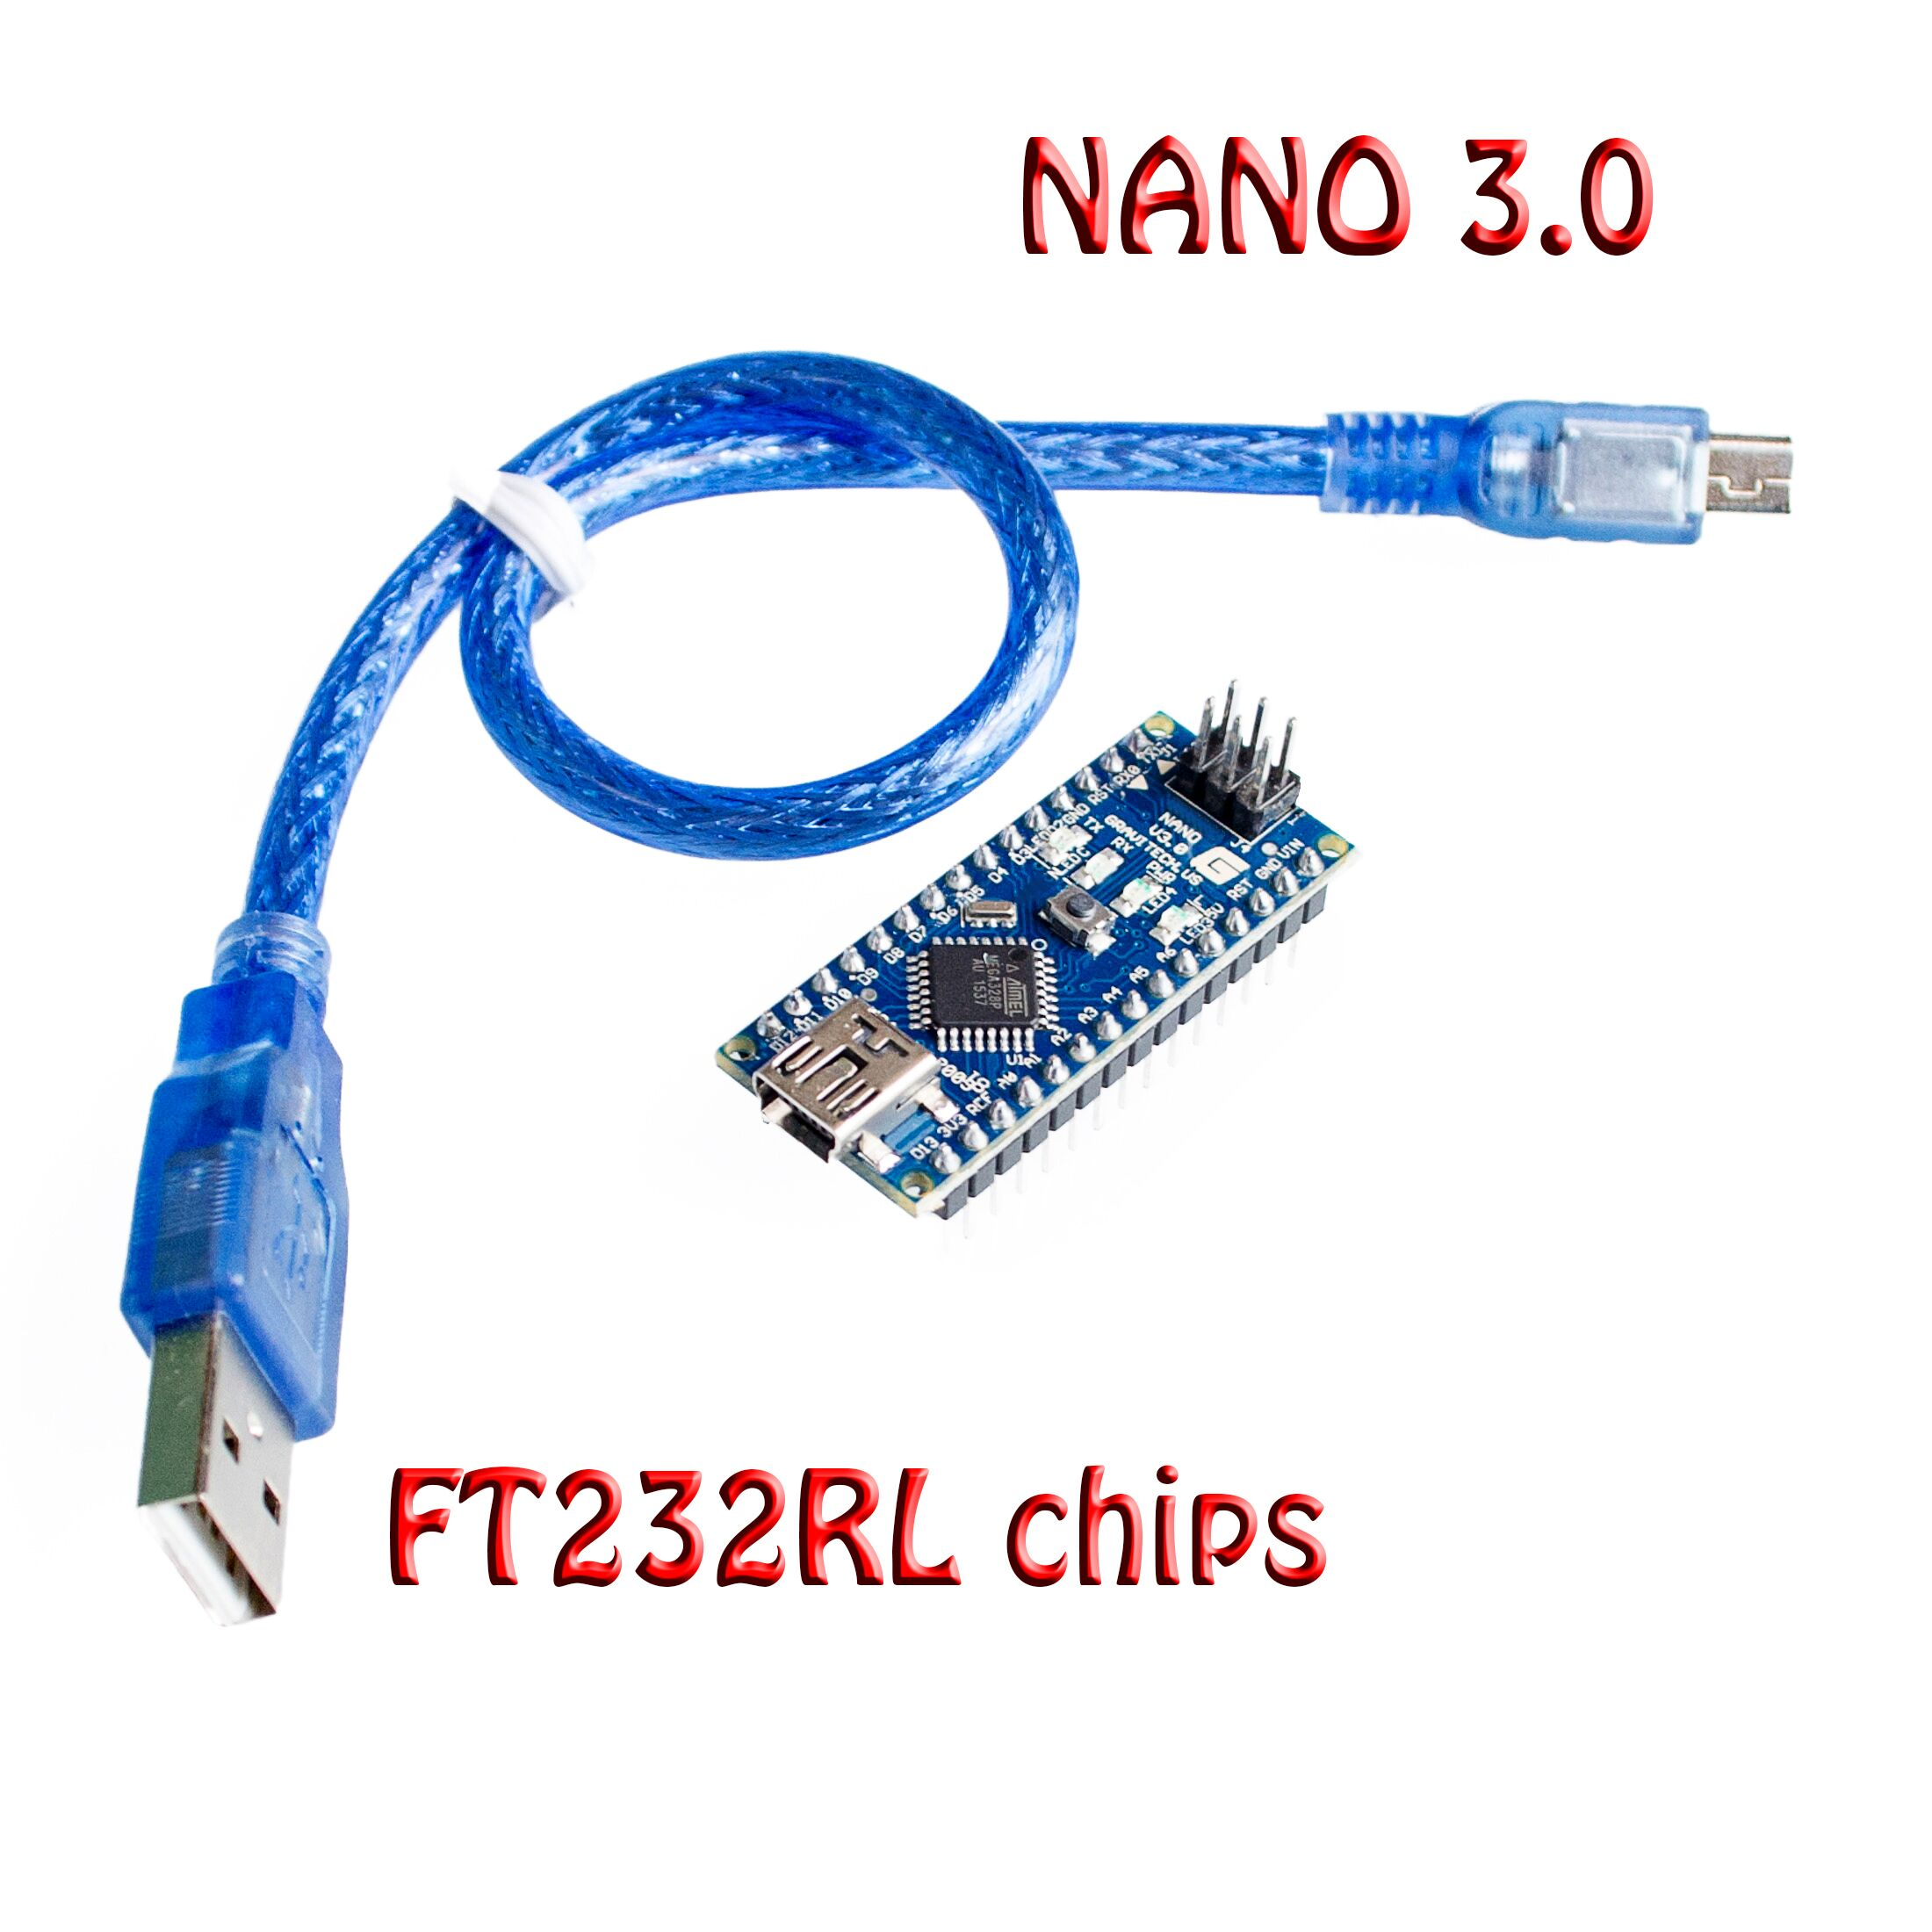 10set/lot Original Nano 3.0 atmega328 mini version <font><b>FT232RL</b></font> imported <font><b>chips</b></font> support win7 Win8 for arduino with USB cable image